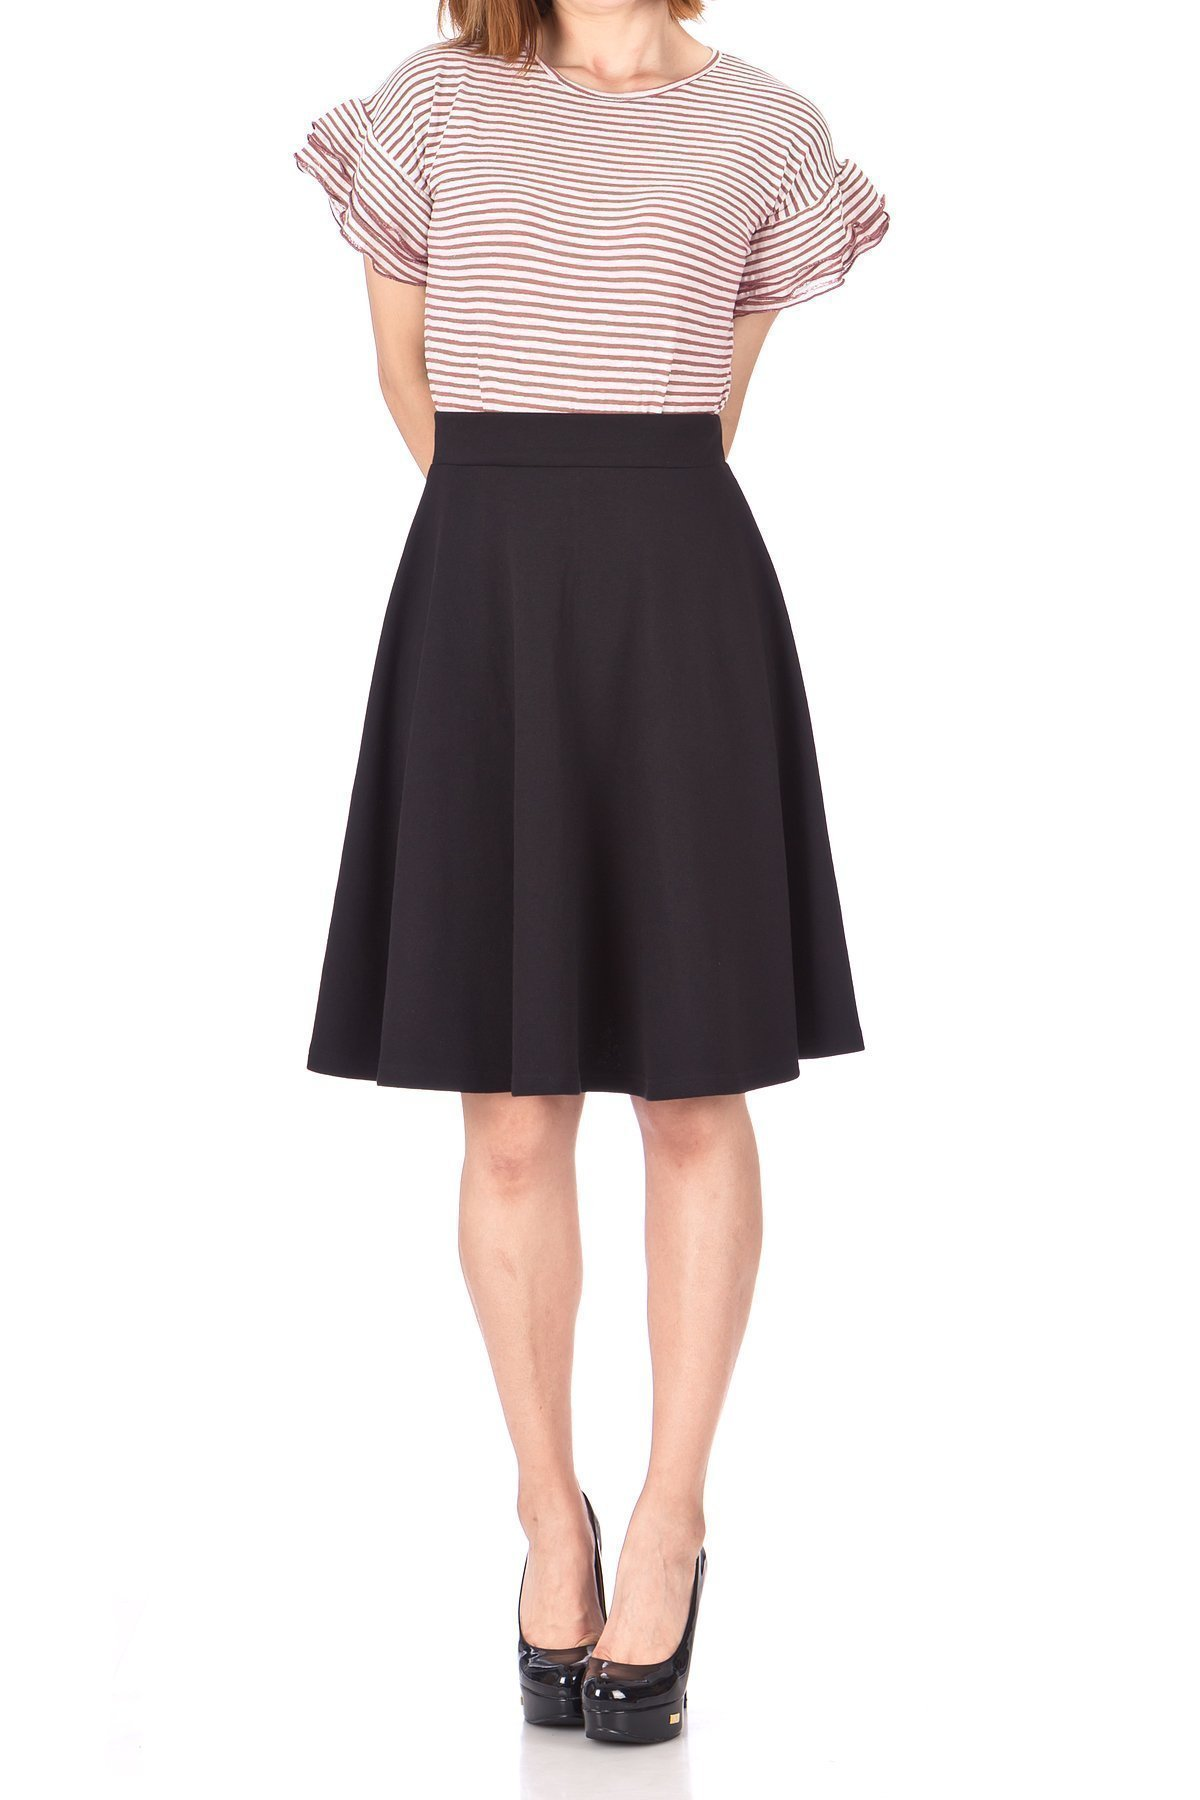 Comfy and Lovely Cotton Blend Versatile Casual Office High Waist A line Full Flared Swing Circle Skater Knee Length Skirt Black 02